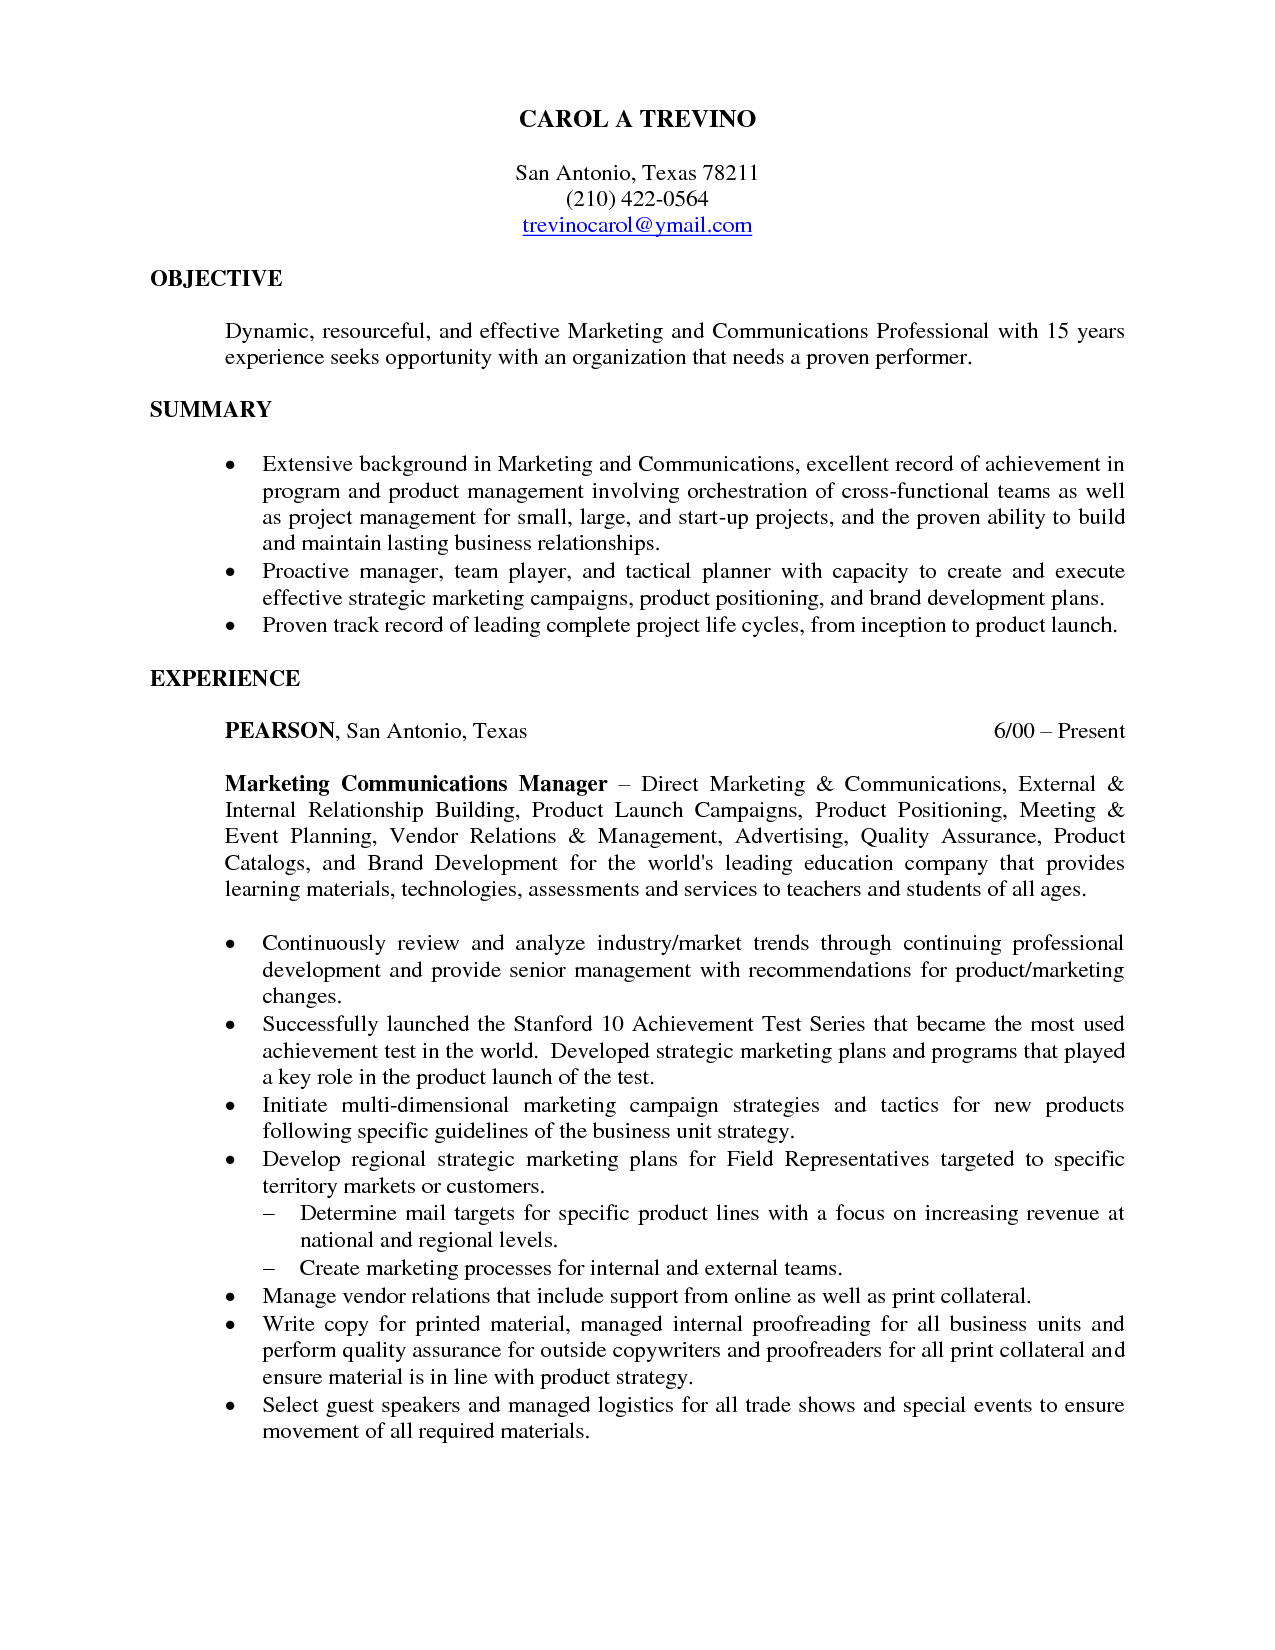 Project Manager Resume Objective Examples 15 Objective Resume Examples Samplebusinessresume